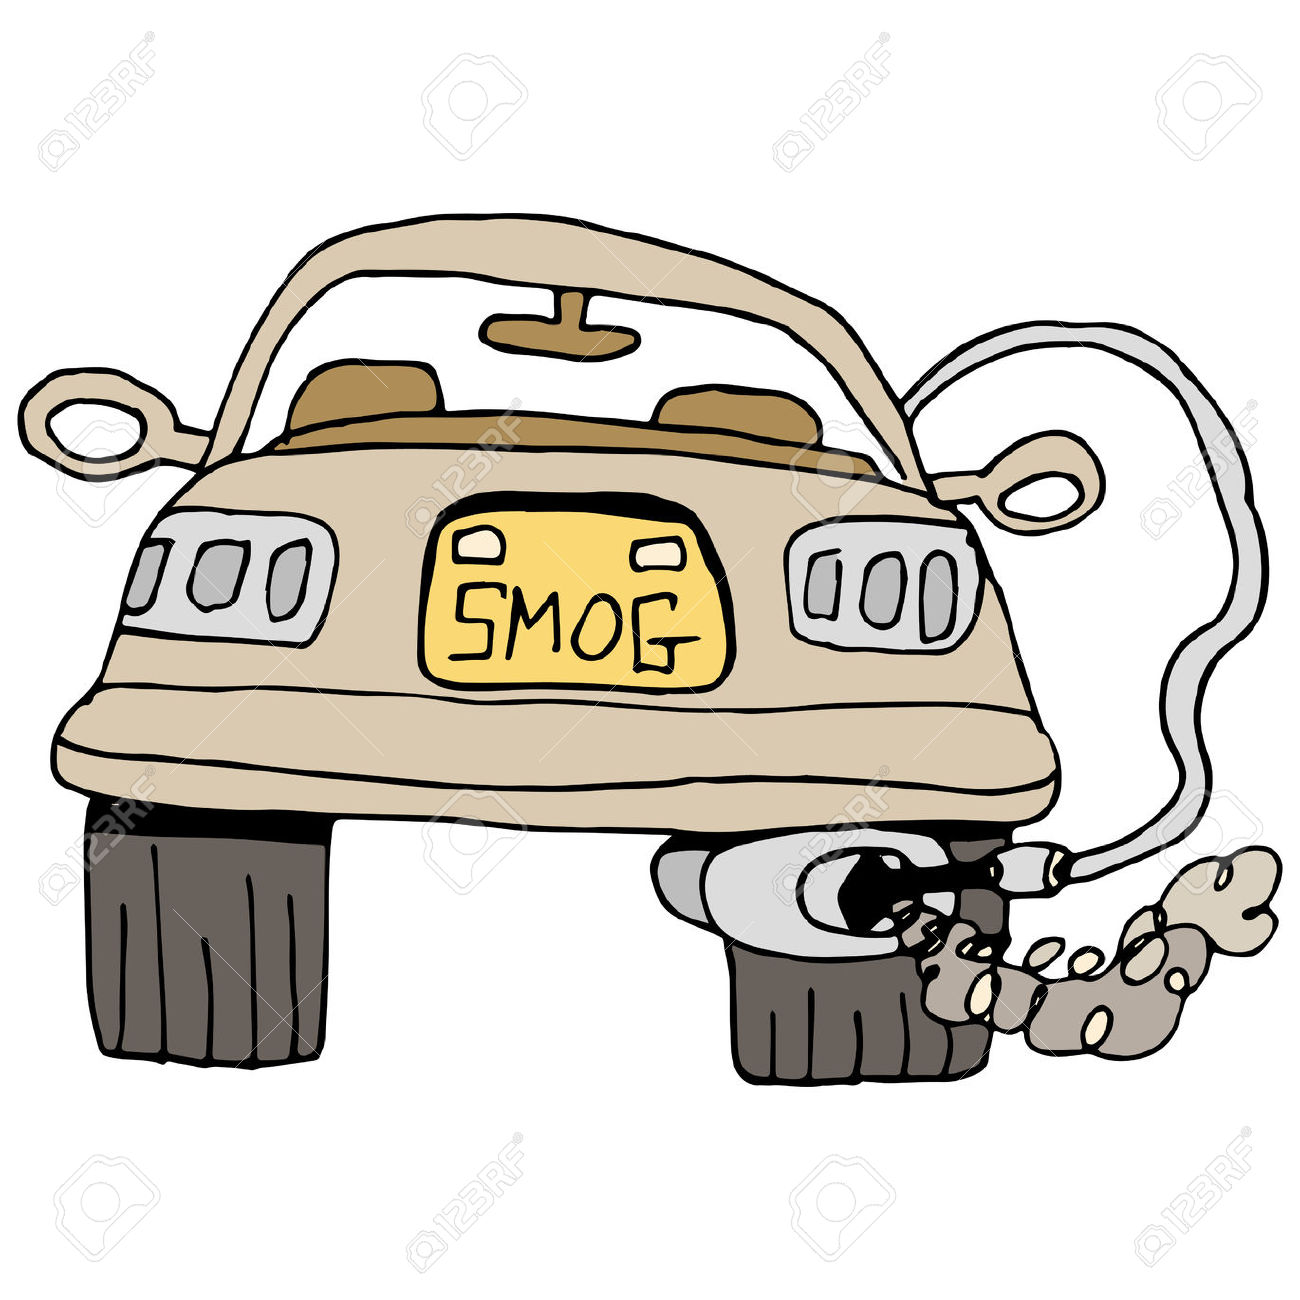 An Image Of A Car Getting A Smog Check. Royalty Free Cliparts.